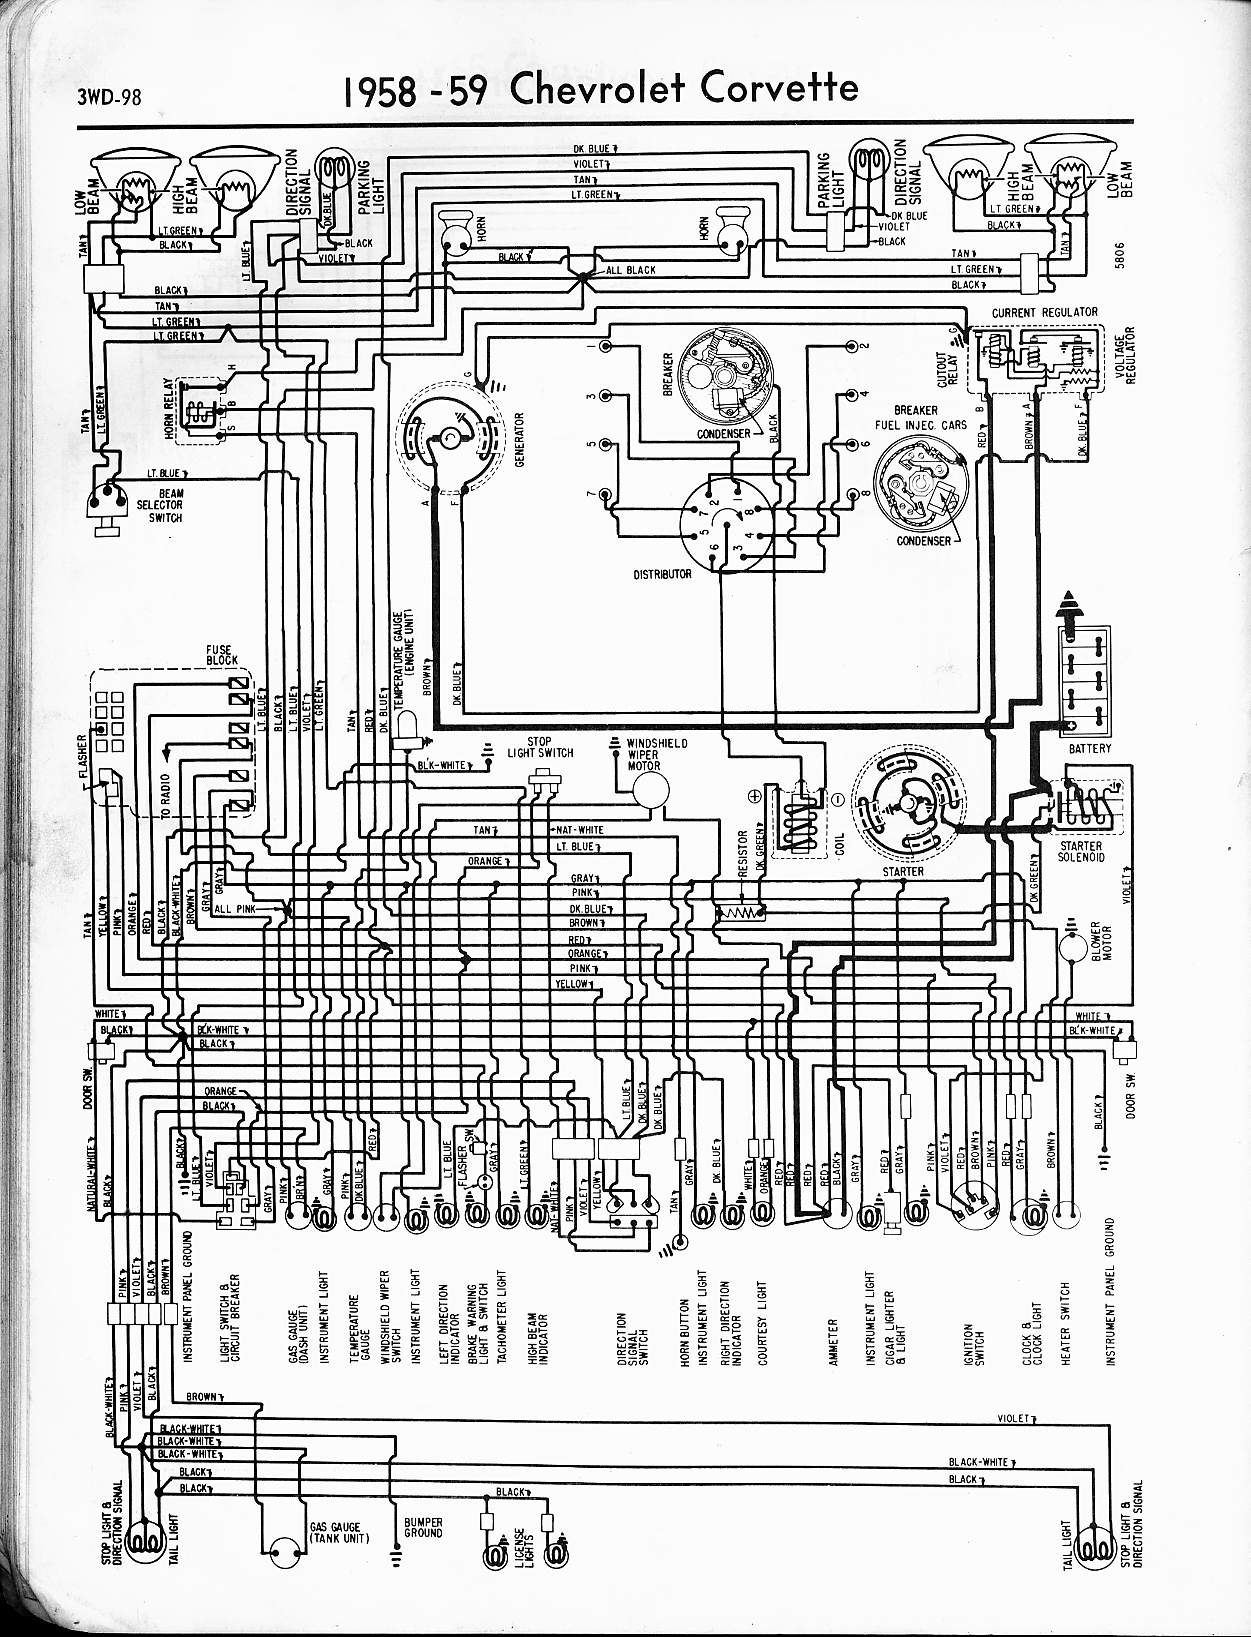 1957 chevy corvette wiring diagrams wiring library rh 34 mac happen de